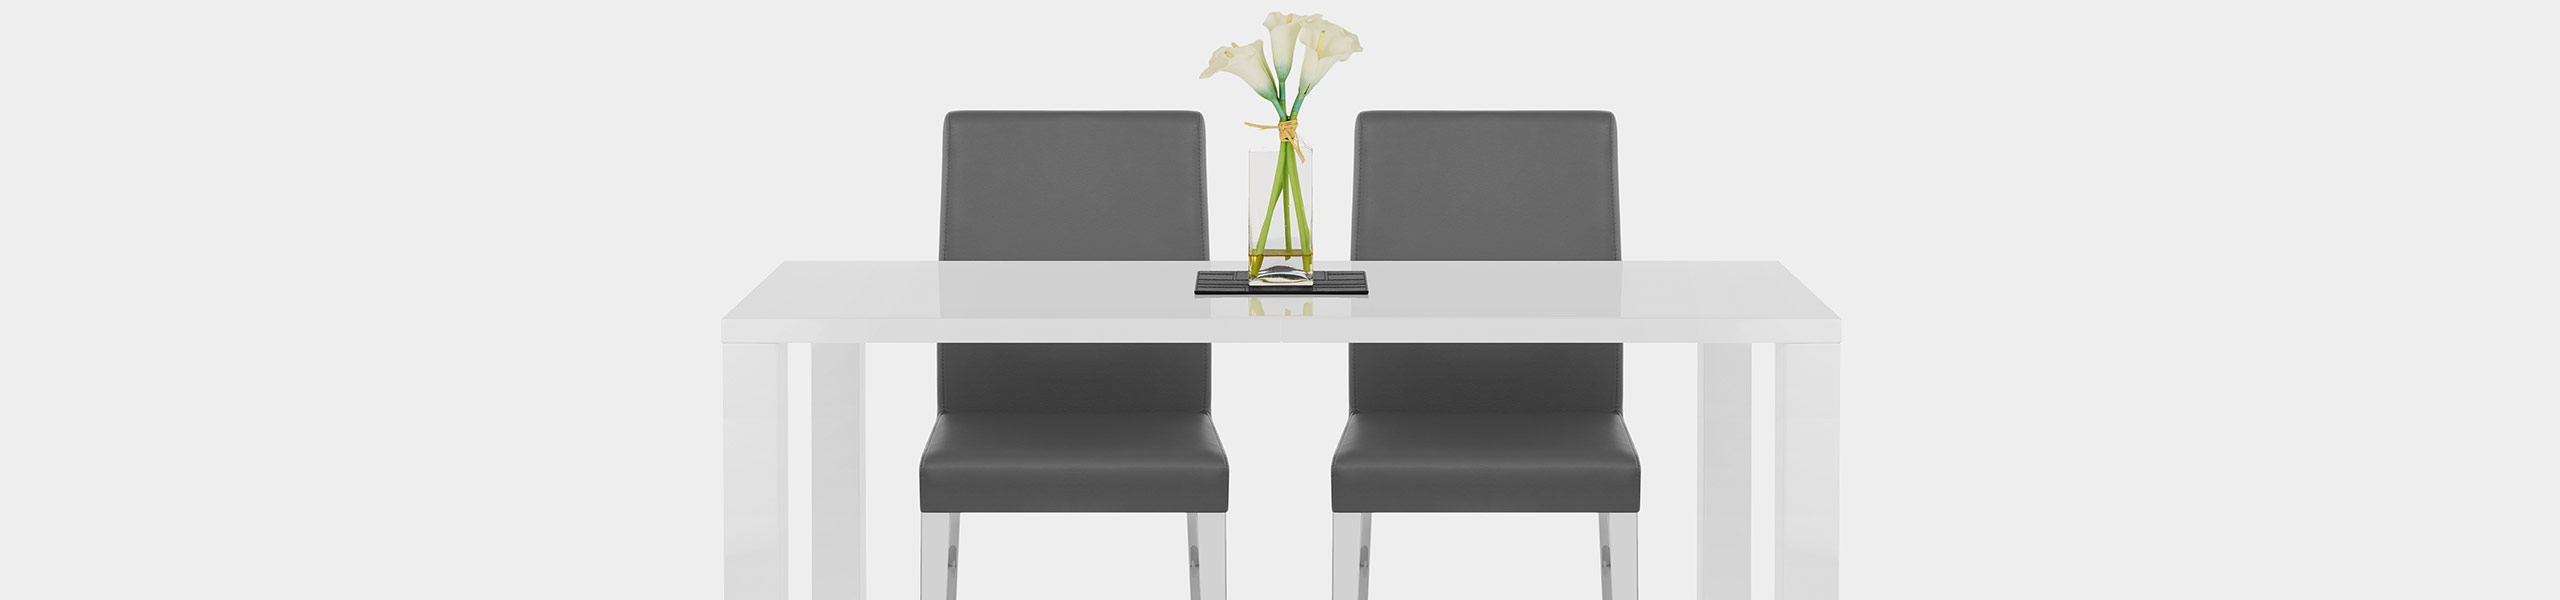 Dash Dining Chair Grey Video Banner